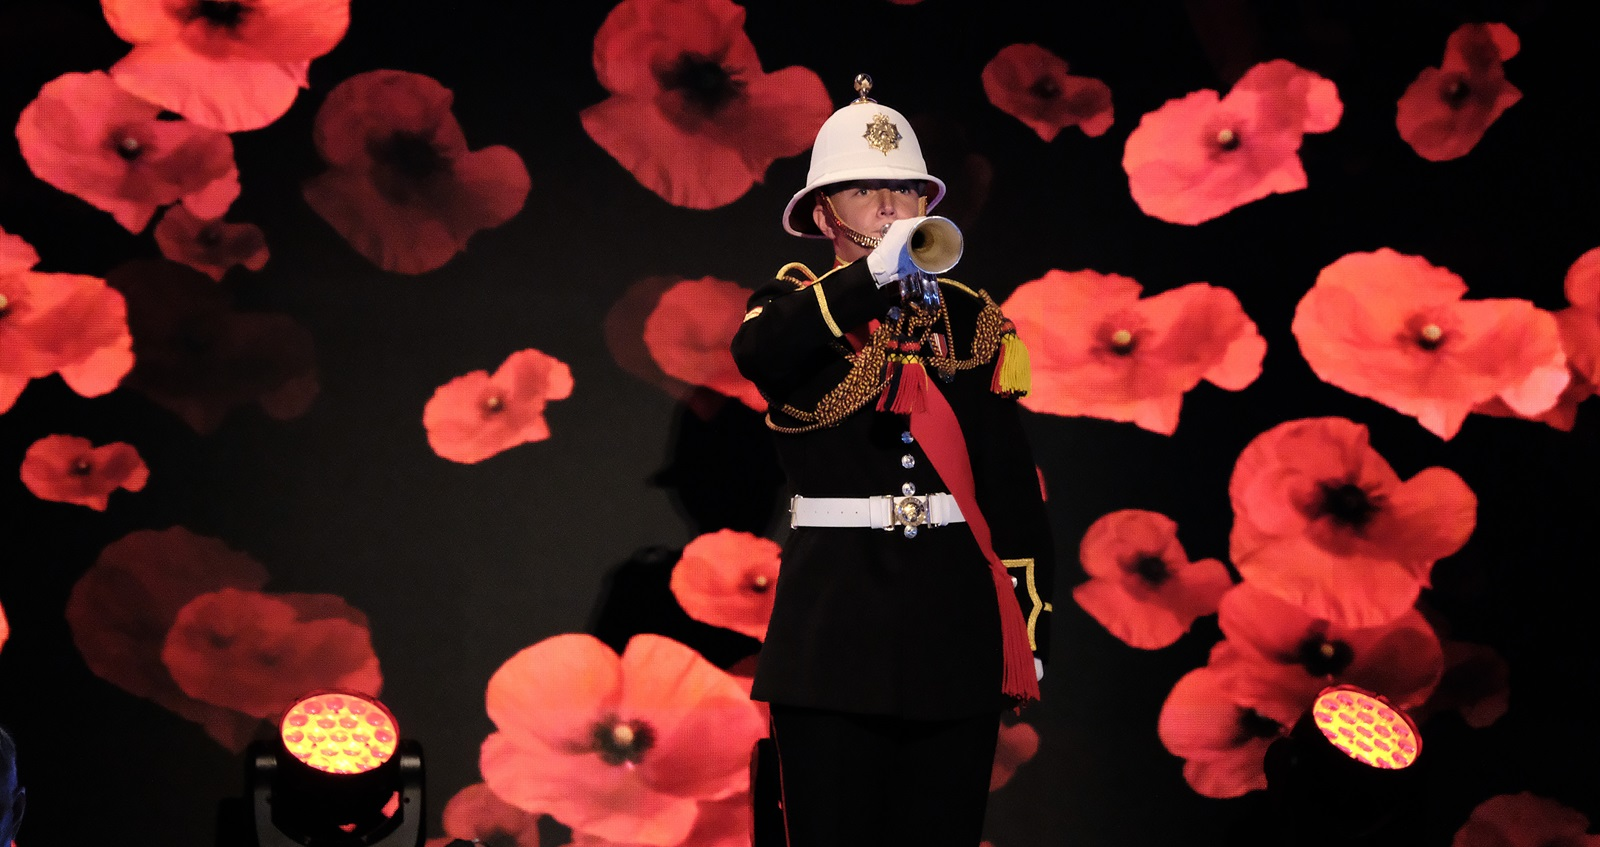 Festival of Remembrance 2018 trumpeter